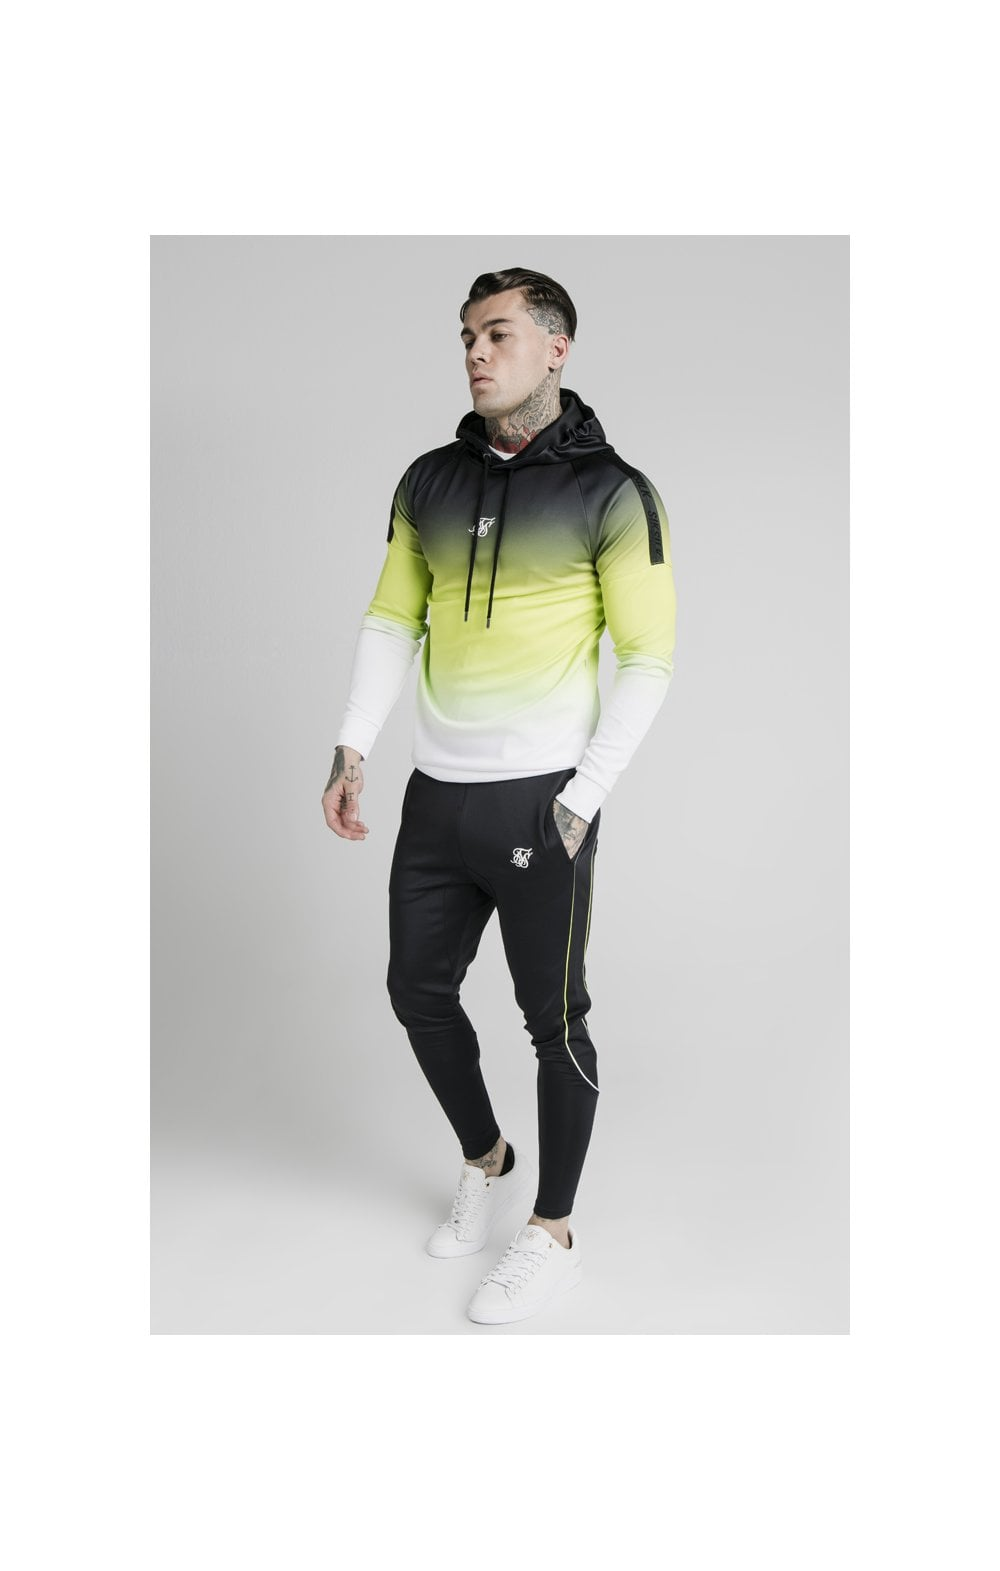 Load image into Gallery viewer, SikSilk Vapour Tri-Fade Overhead Hoodie - Black, Fluro & White (3)